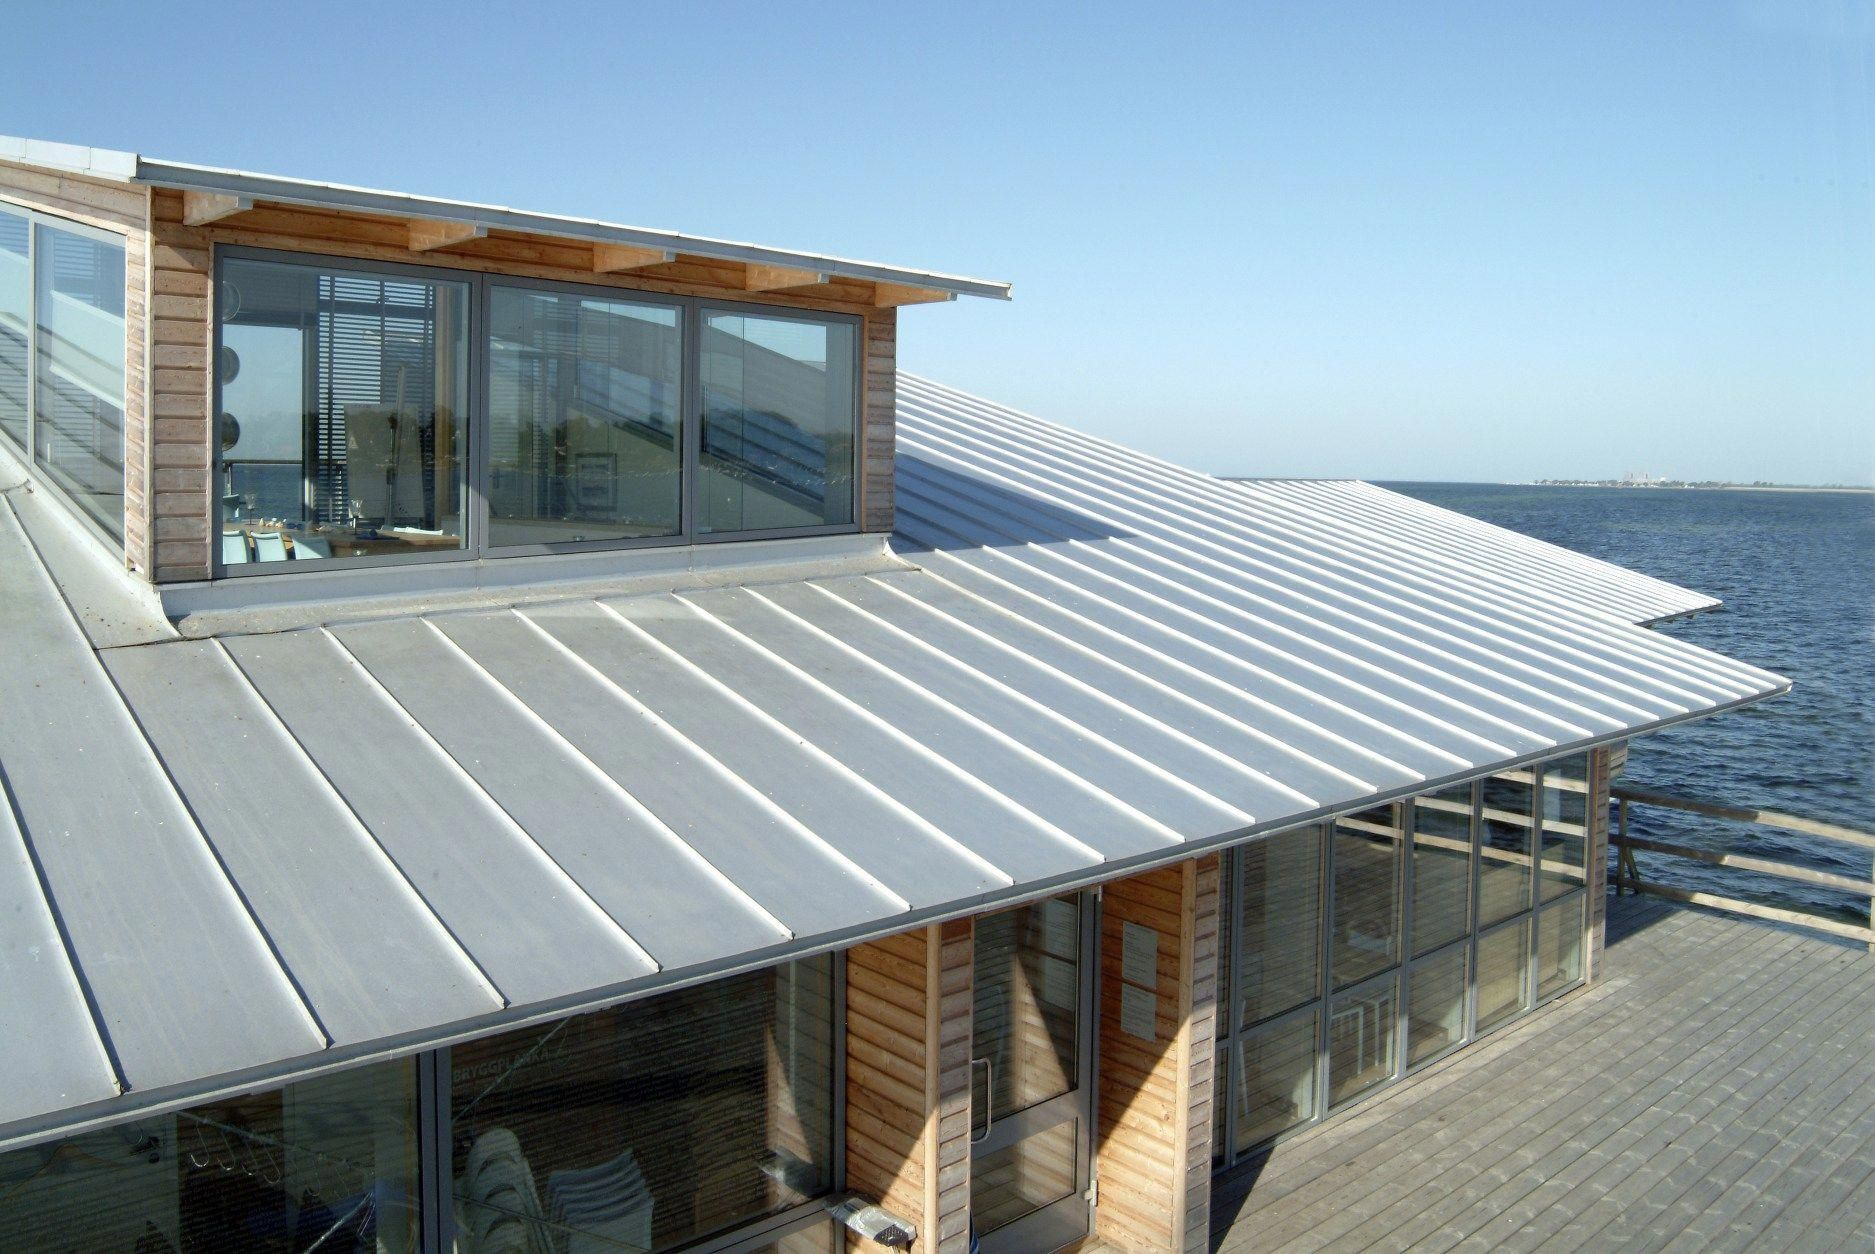 This Comprehensive Guide To Types Of Roof Materials Is All The Research You Need To Evaluate Asphalt Shingles Wood Shing Zinc Roof Metal Roof Colors Cool Roof